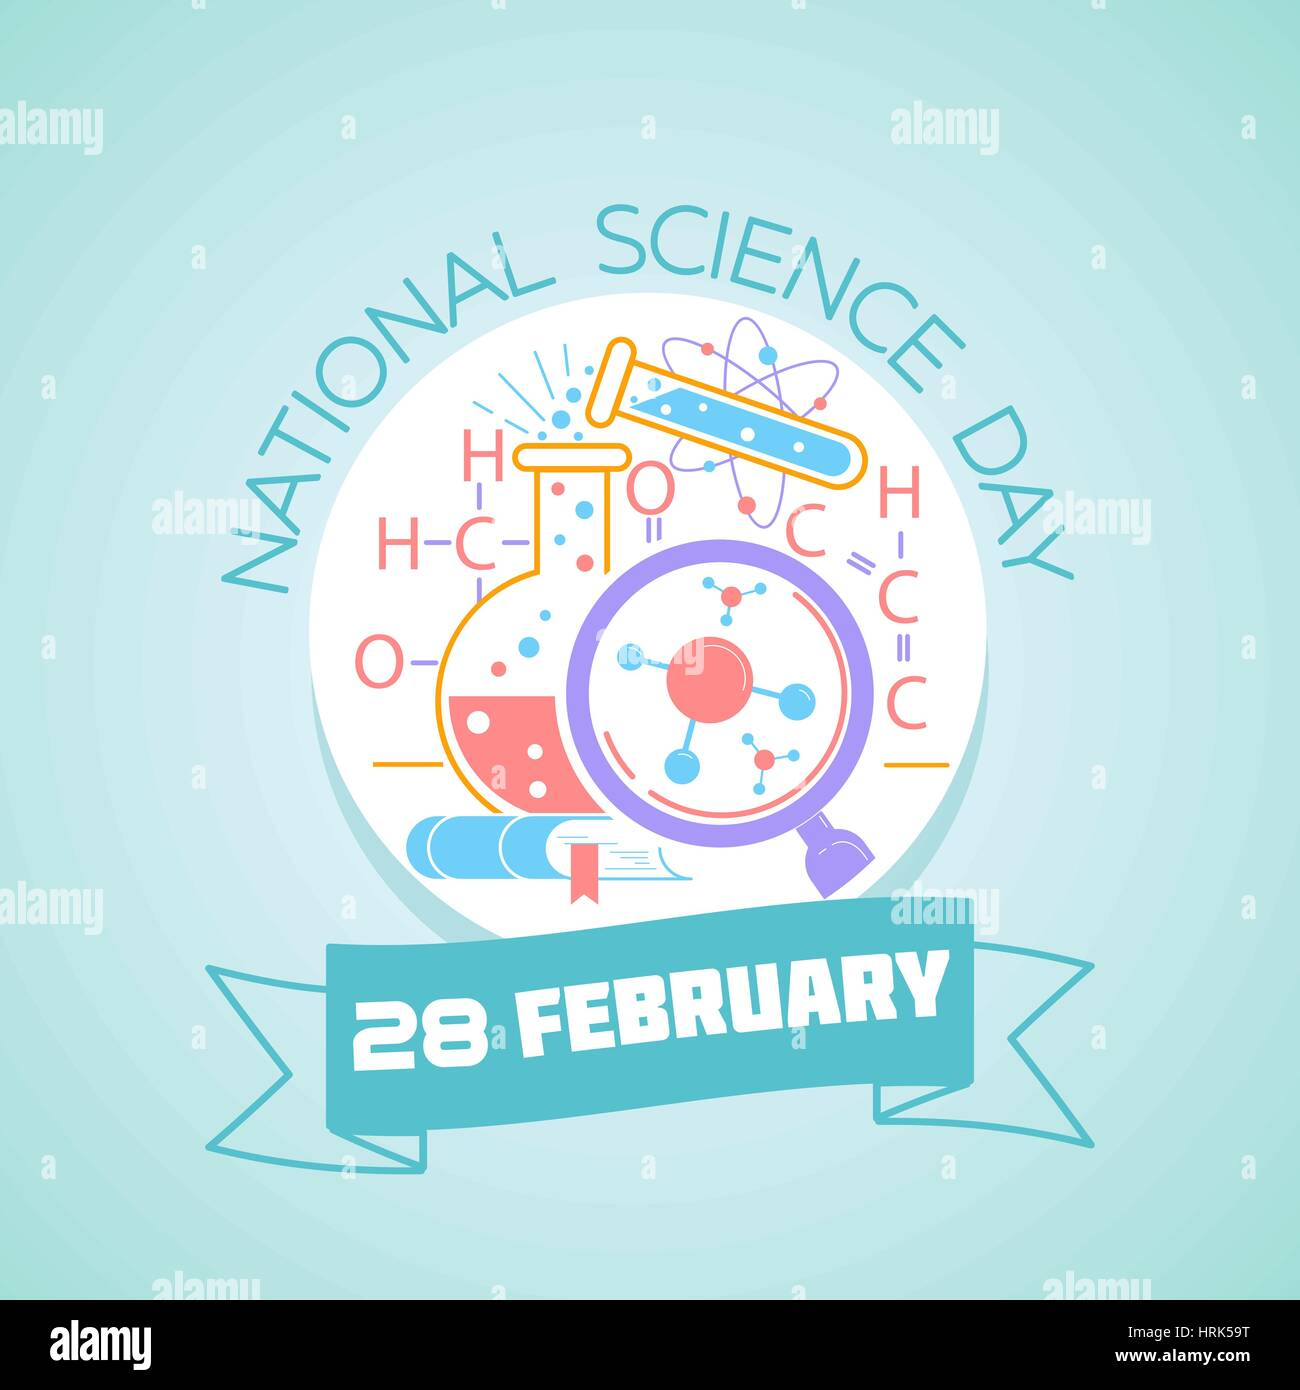 Calendar for each day on february 28 greeting card holiday stock calendar for each day on february 28 greeting card holiday national science day icon in the linear style kristyandbryce Images